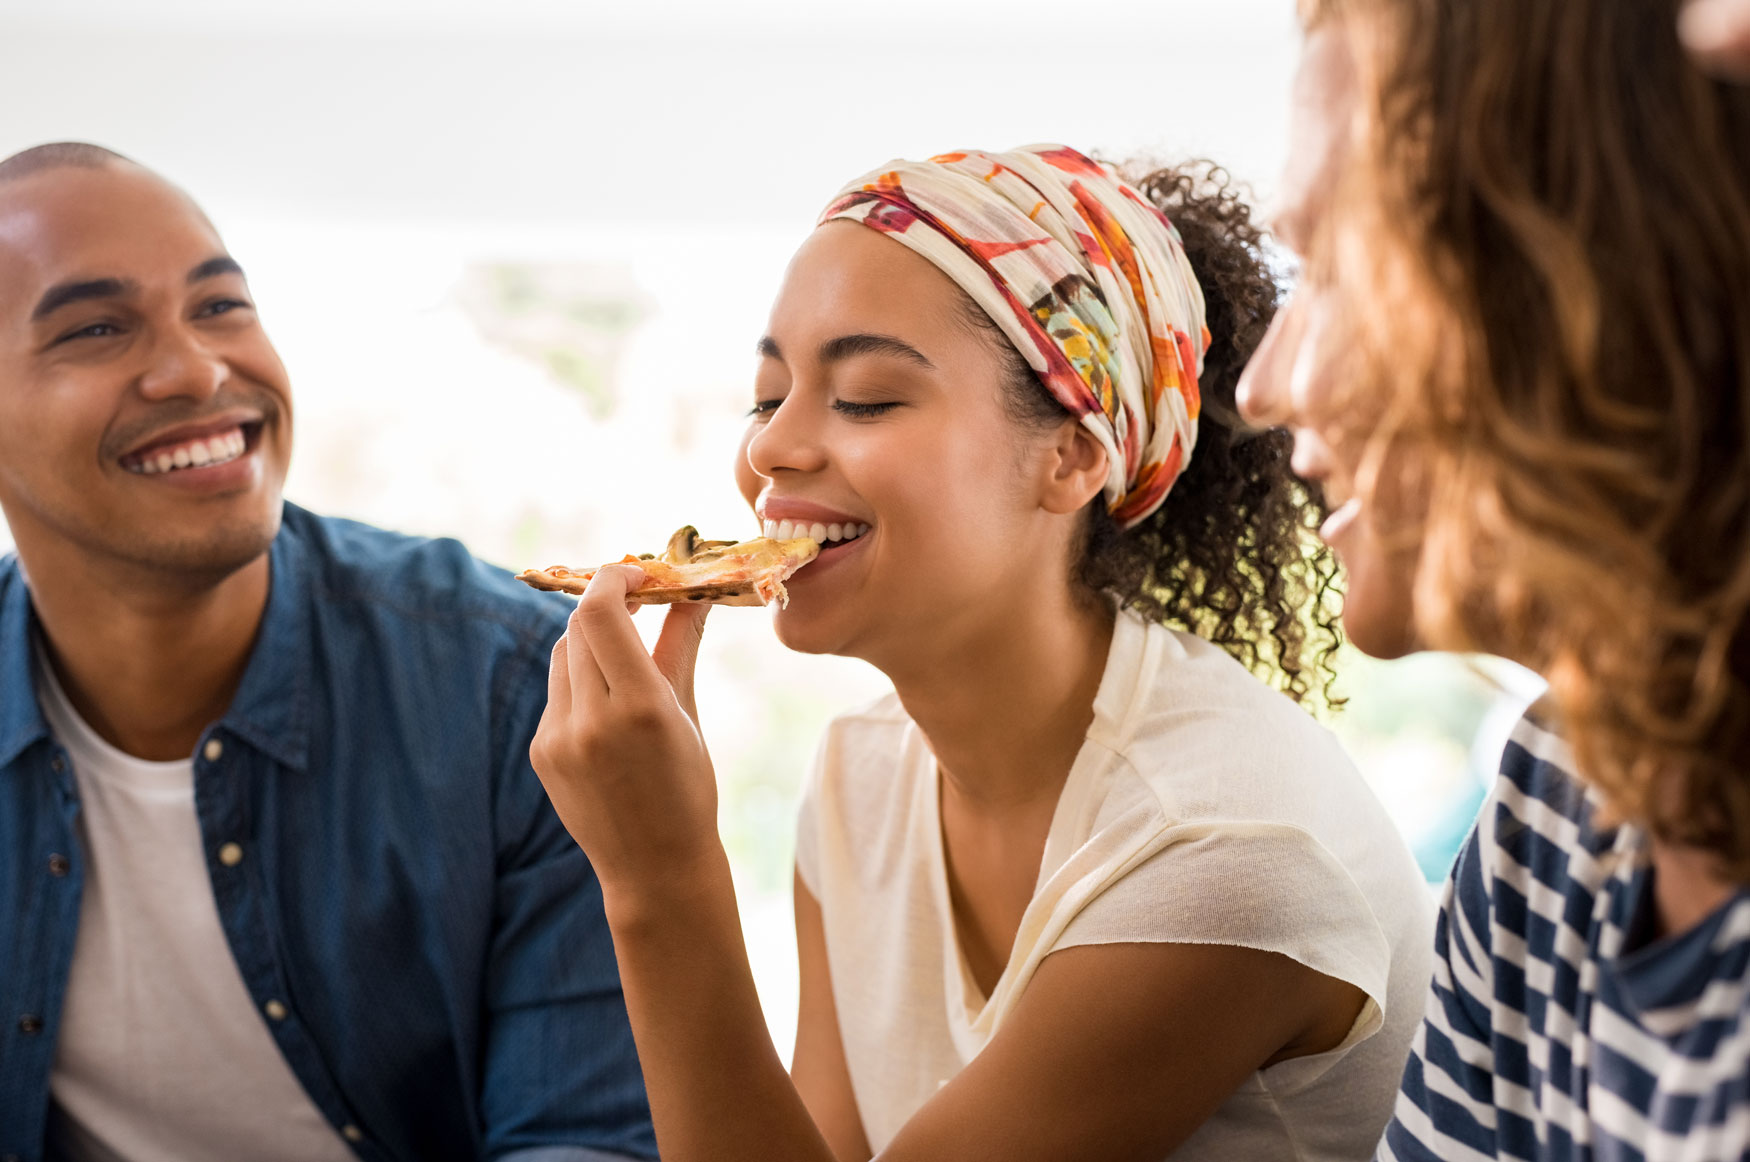 Group of people eating pizza and laughing.